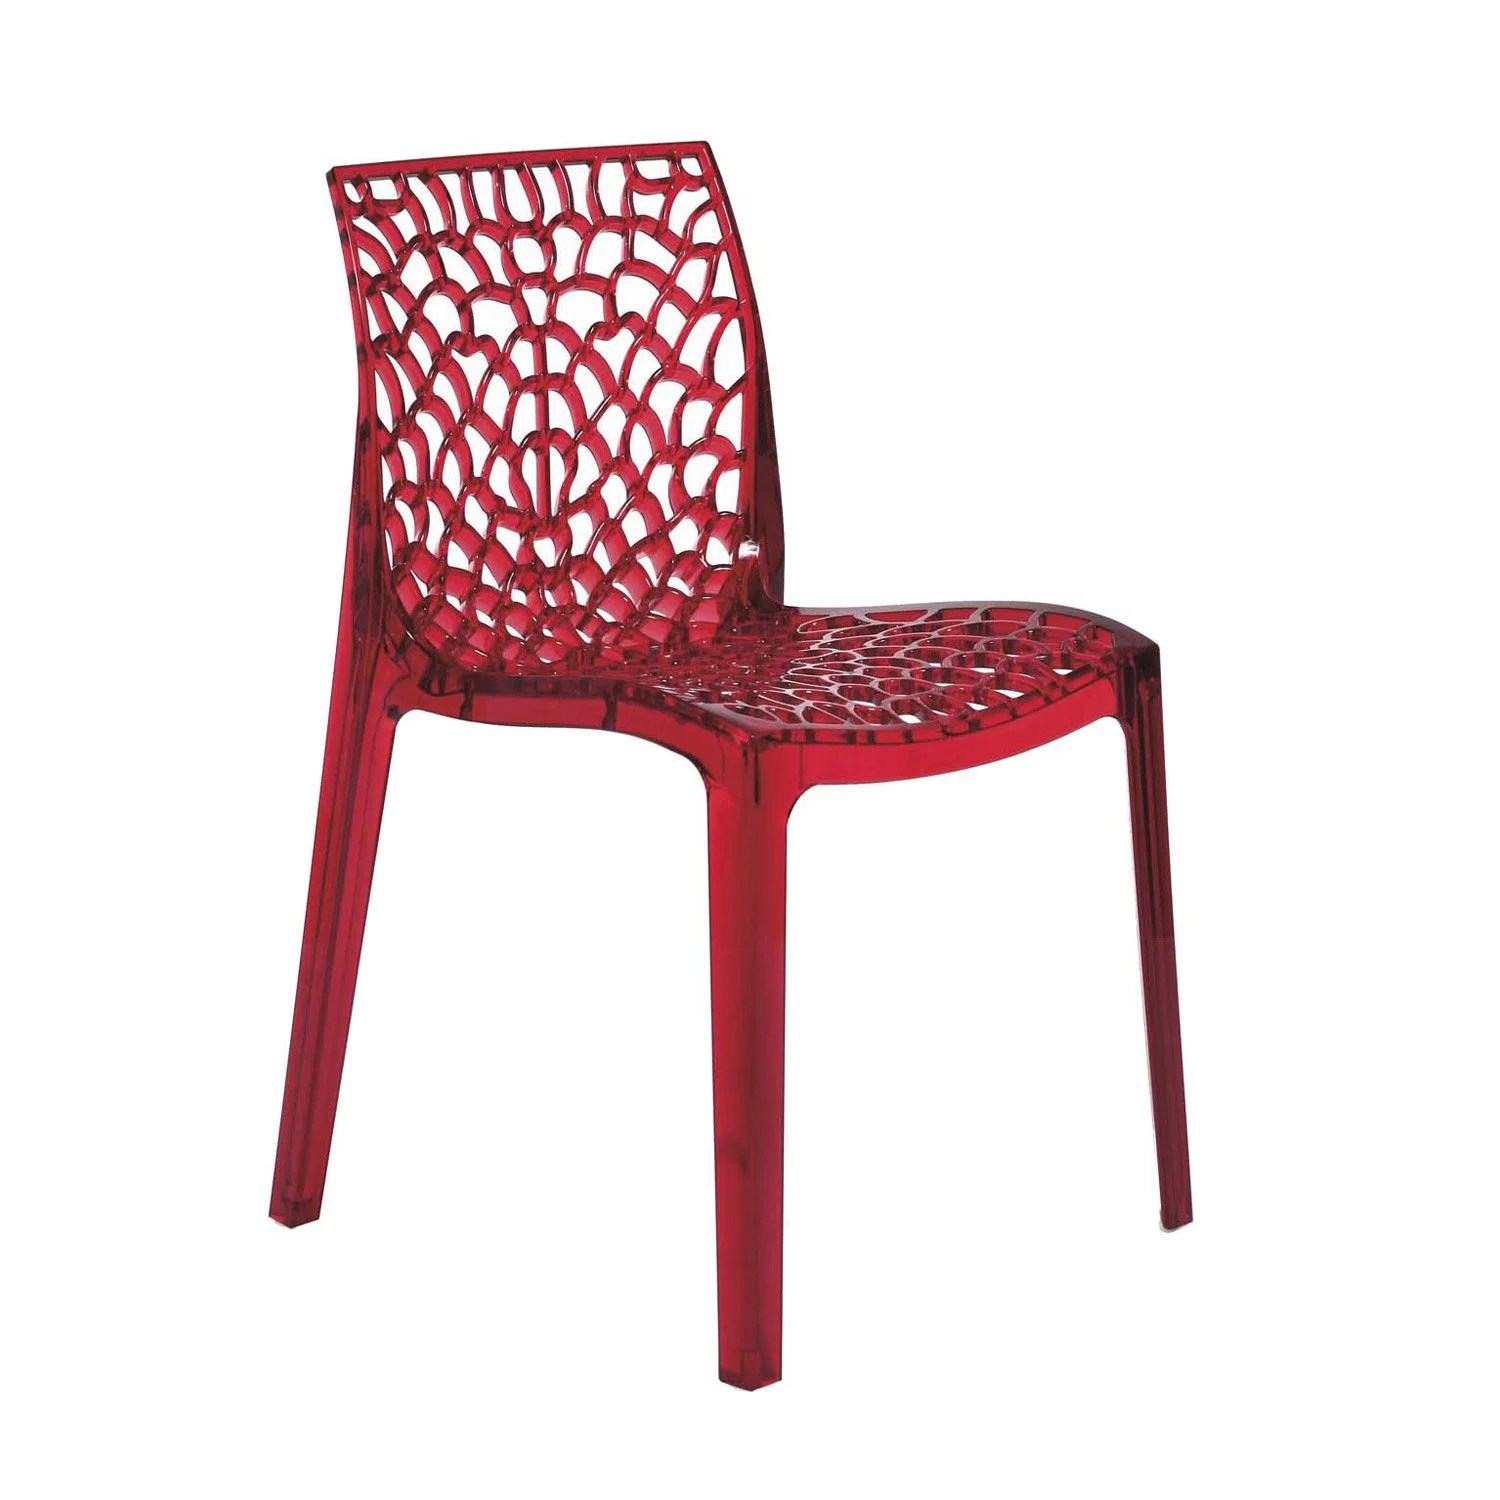 Chaise Jardin Rouge Chaise De Jardin Rouge Owhfg